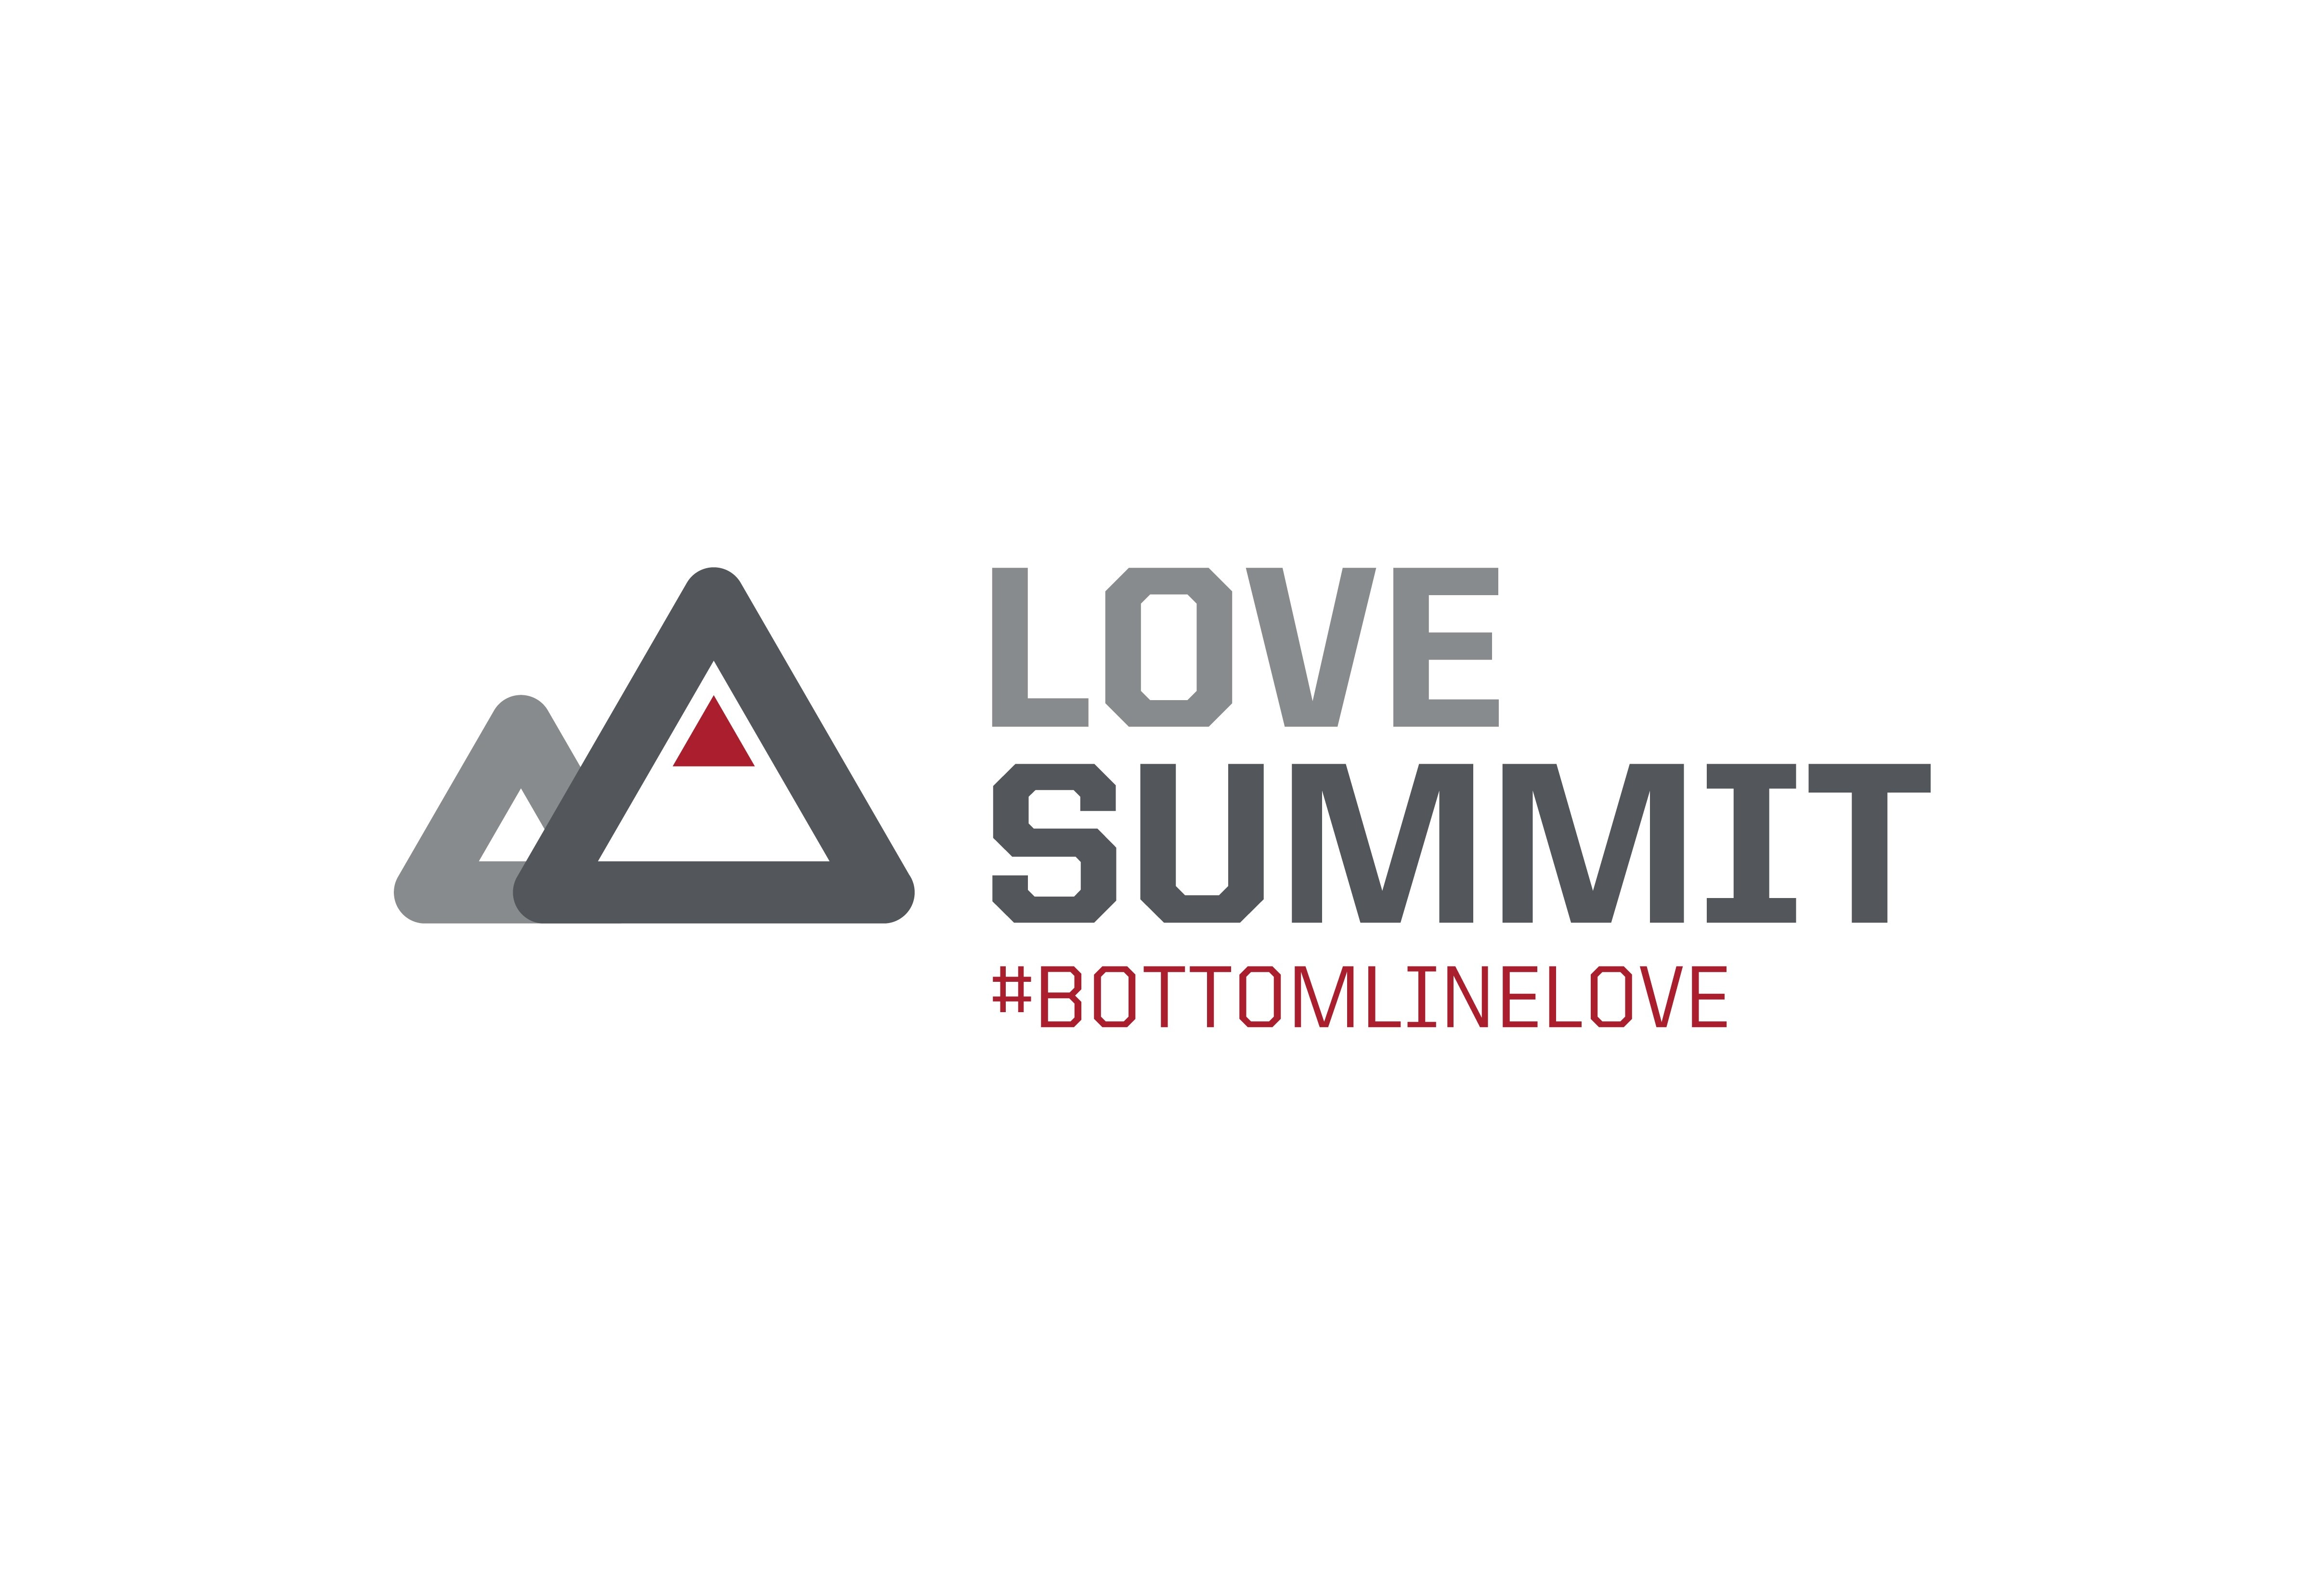 Love Summit 2018 (final date TBD)